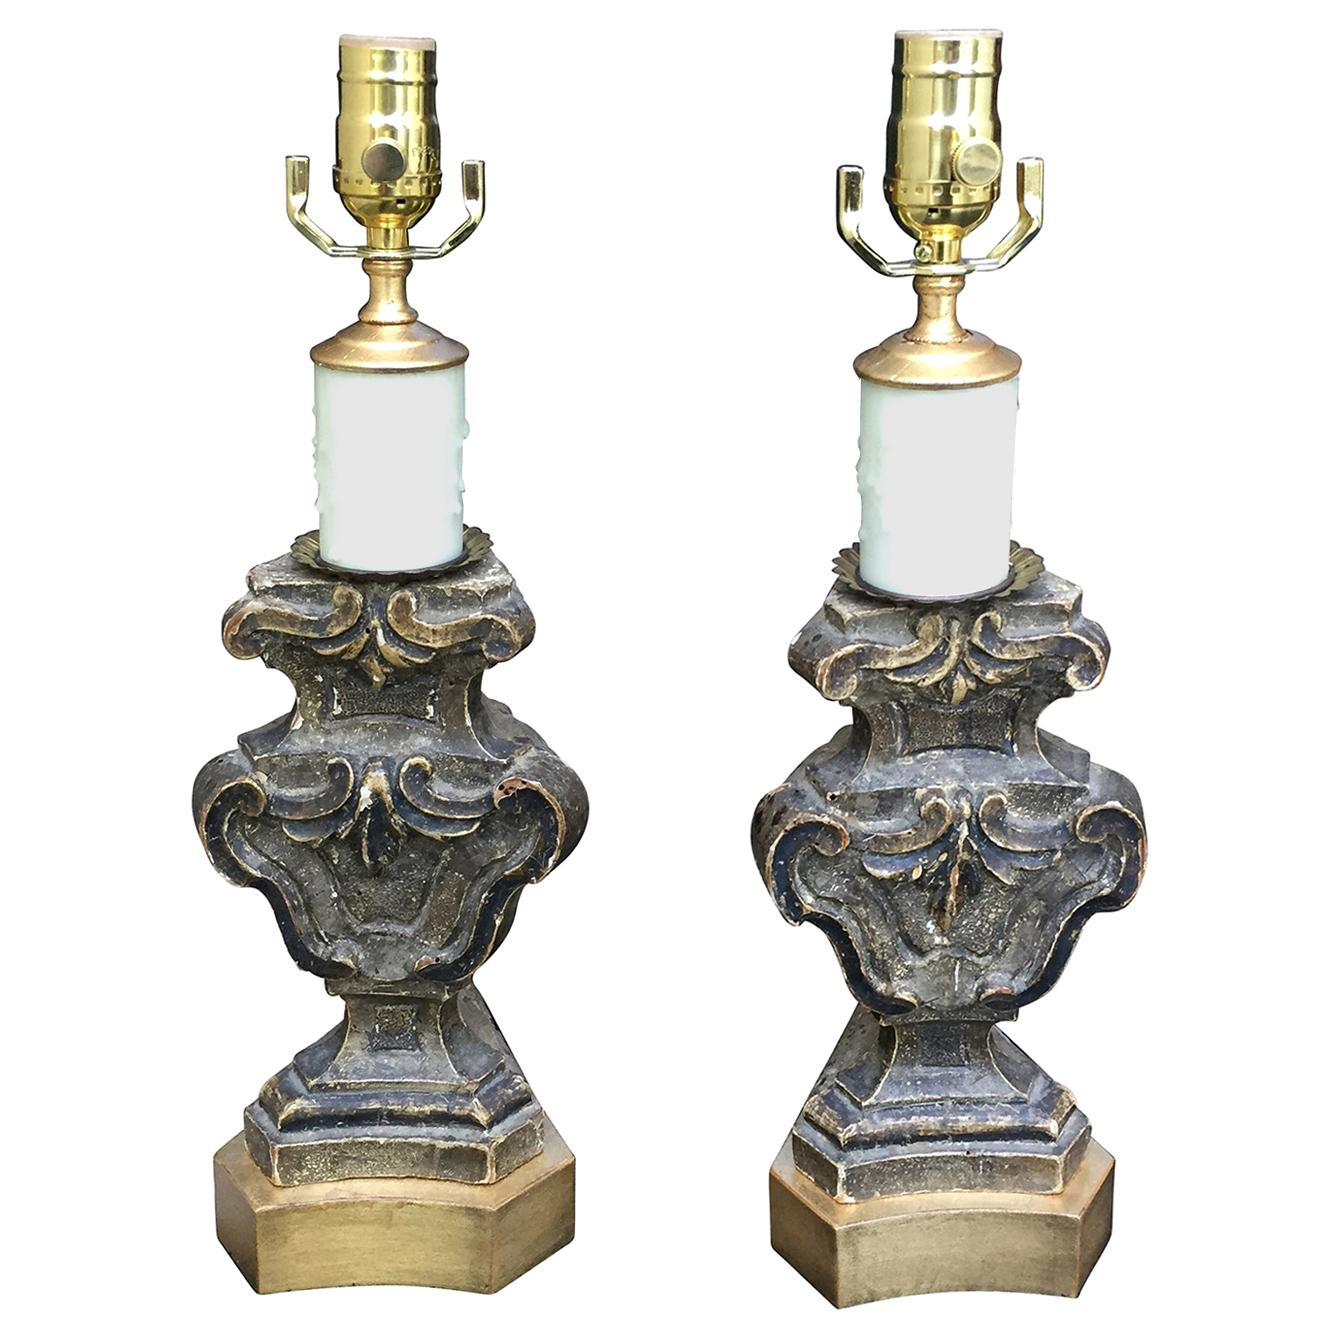 Pair of 18th-19th Century Italian Prickets as Lamps on Custom Giltwood Bases